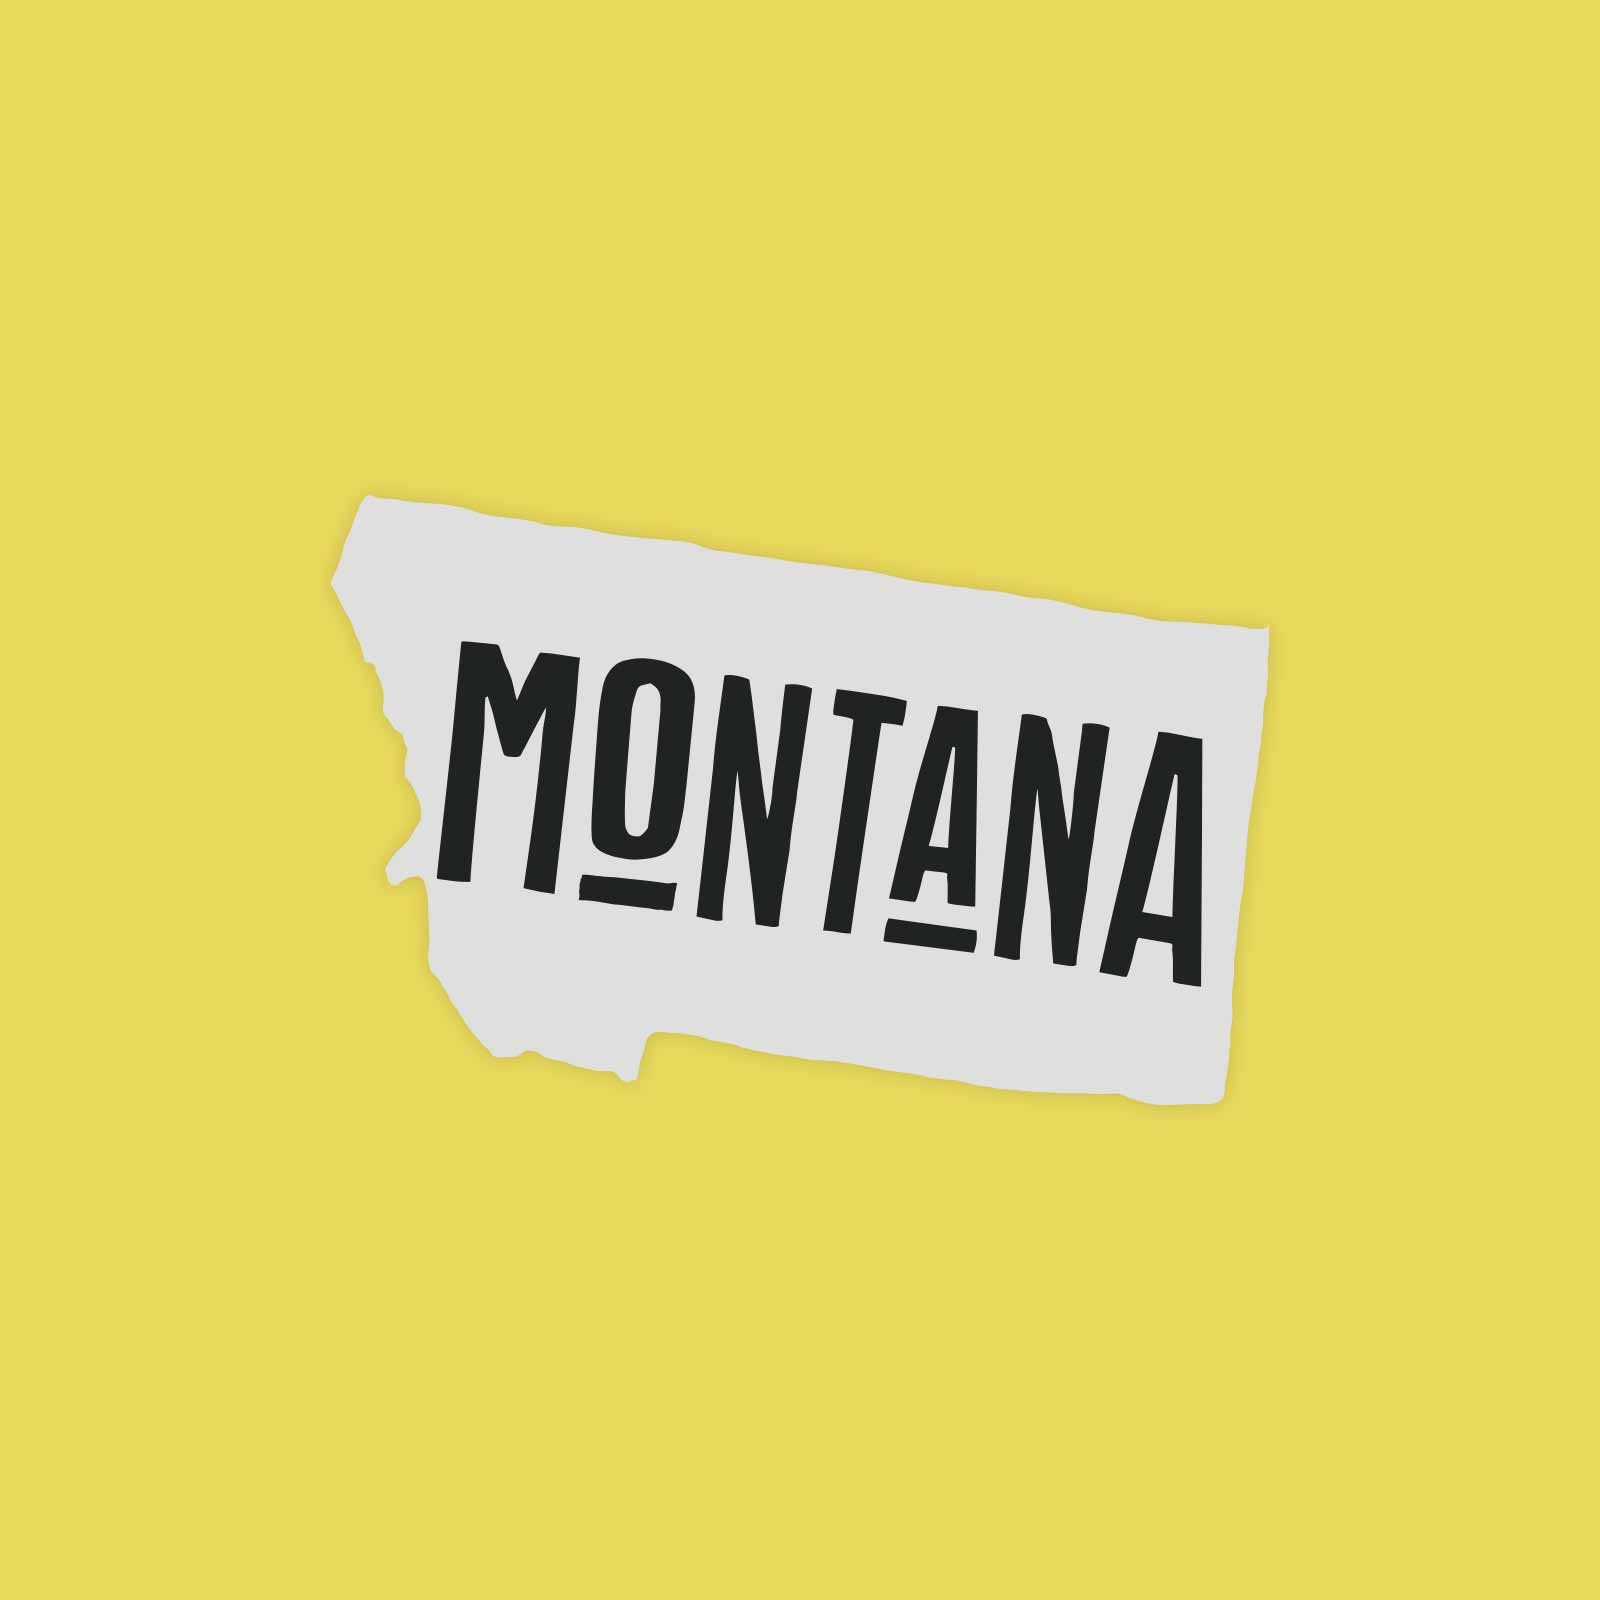 How to start a business in Montana